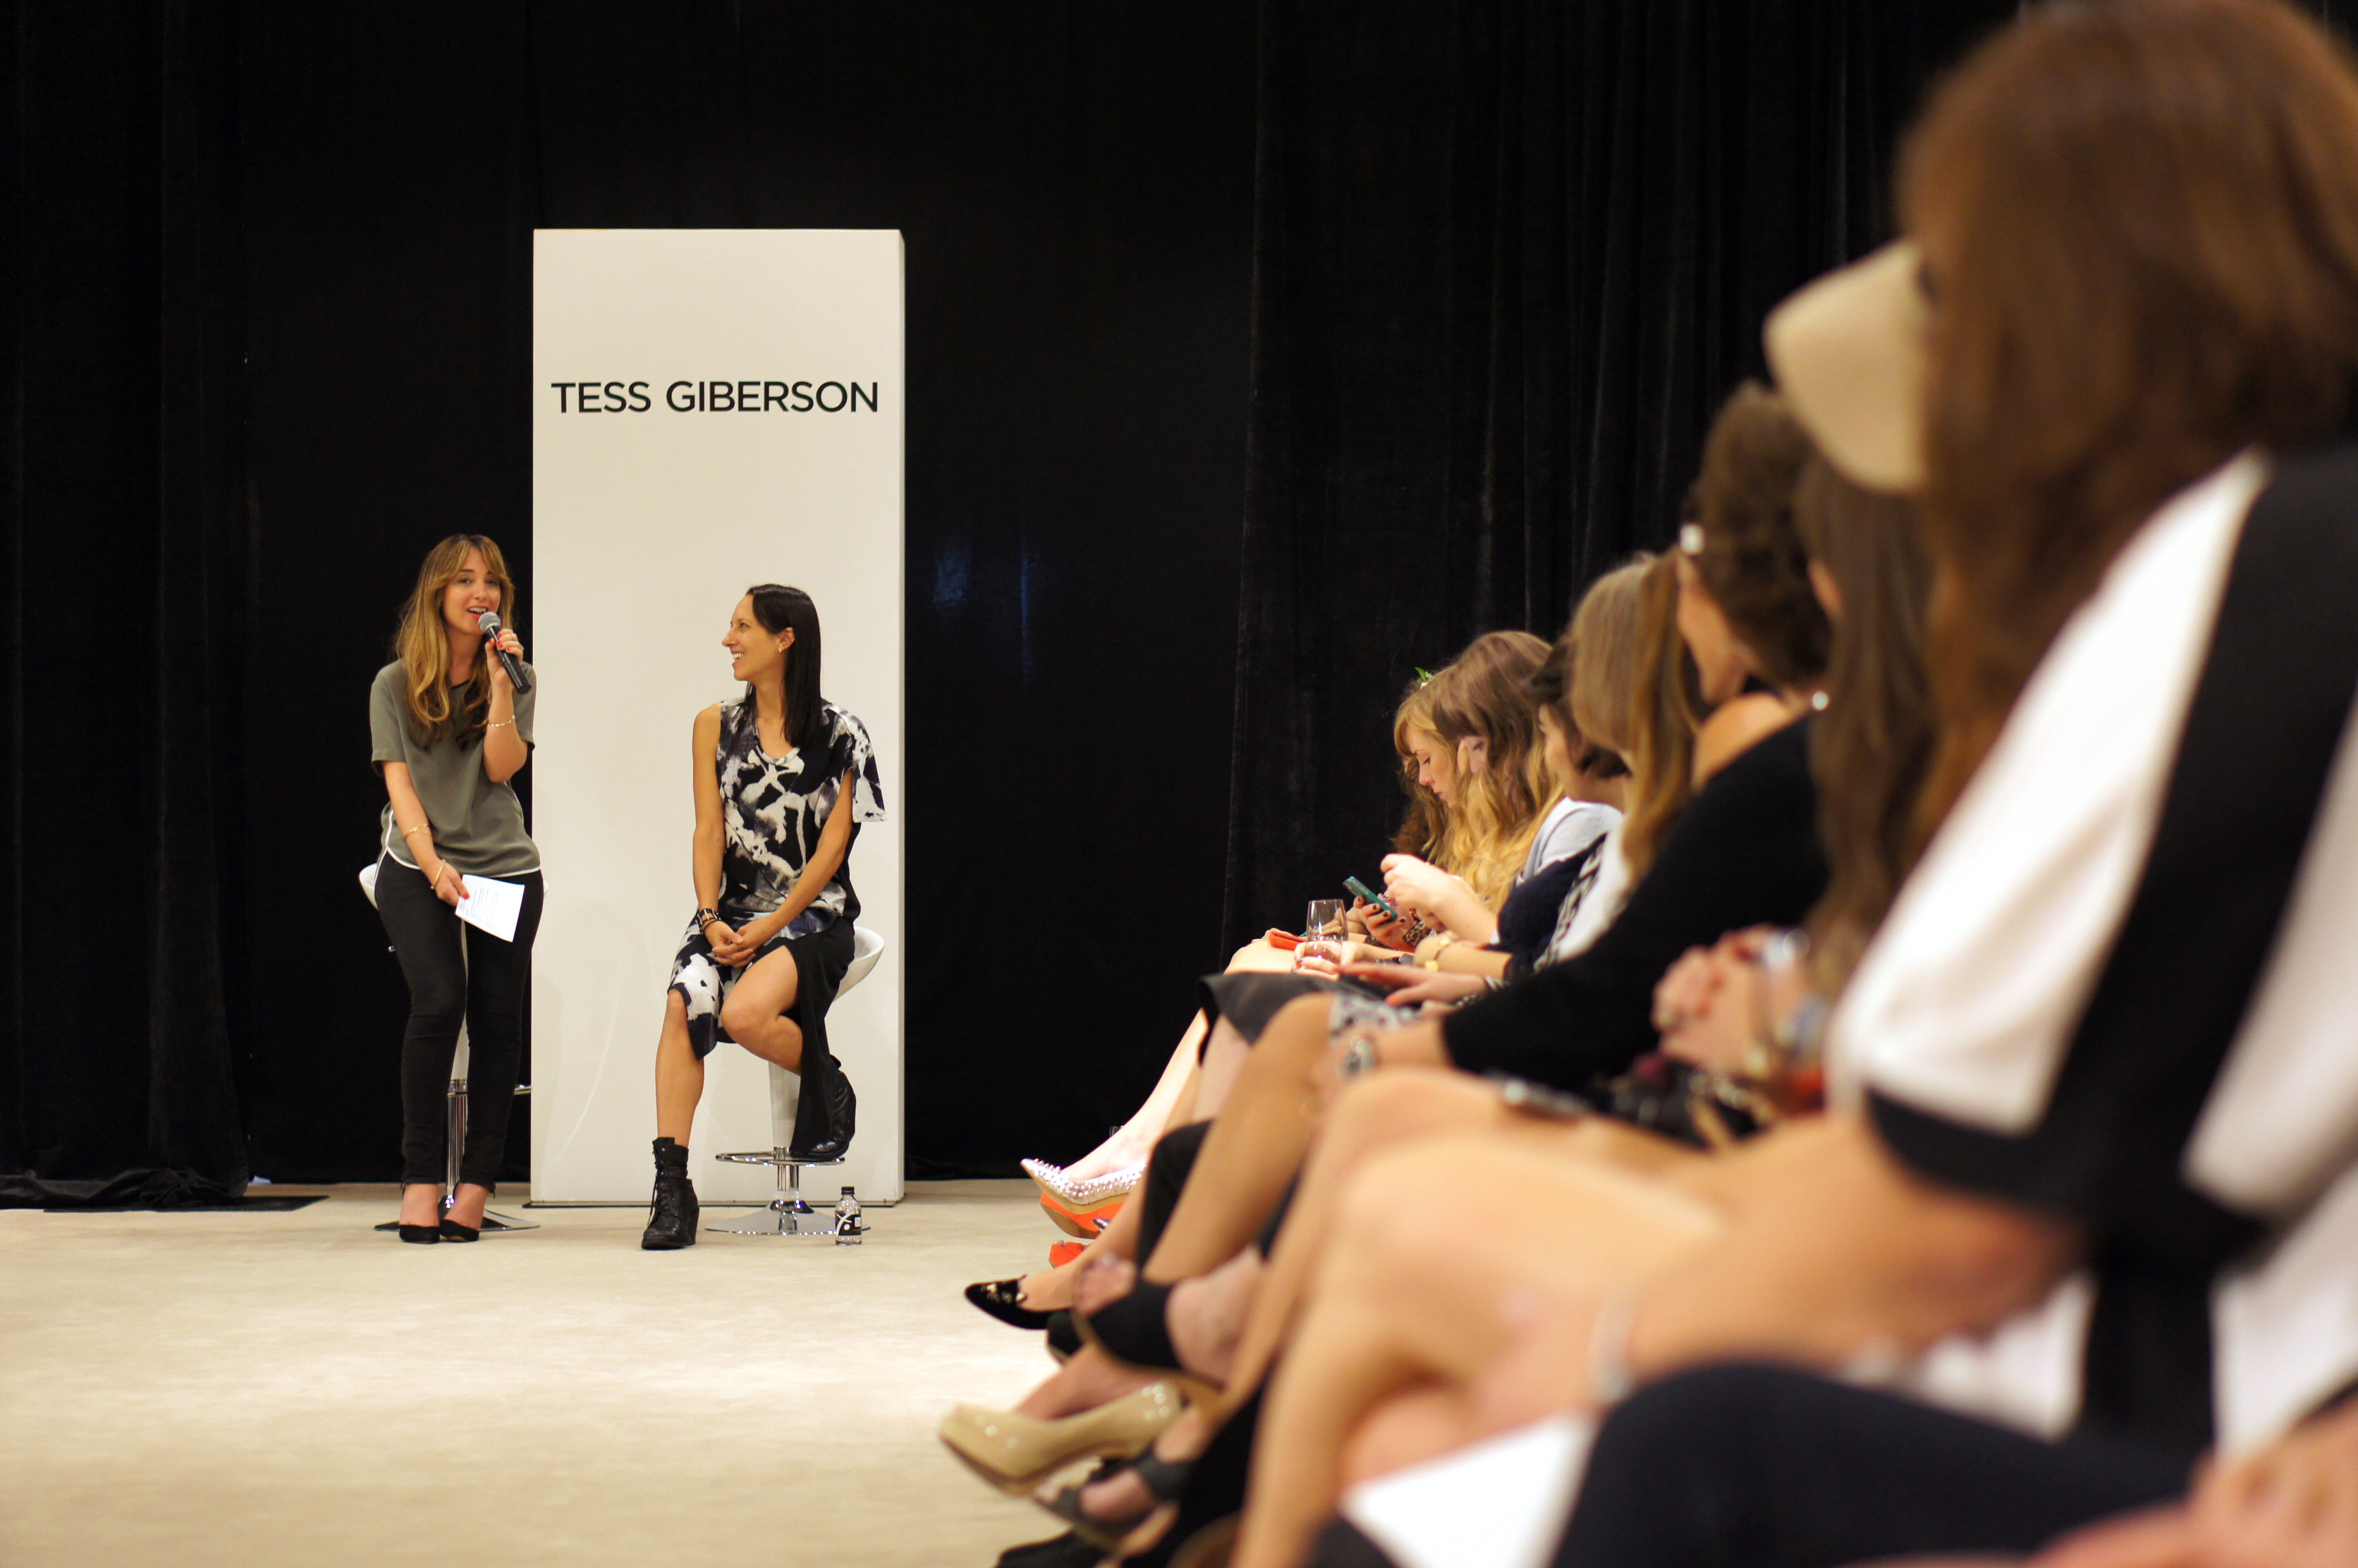 st louis fashion week, tess giberson, fashion show, saks, saks fifth avenue, designer, fashion designer, nyc designer